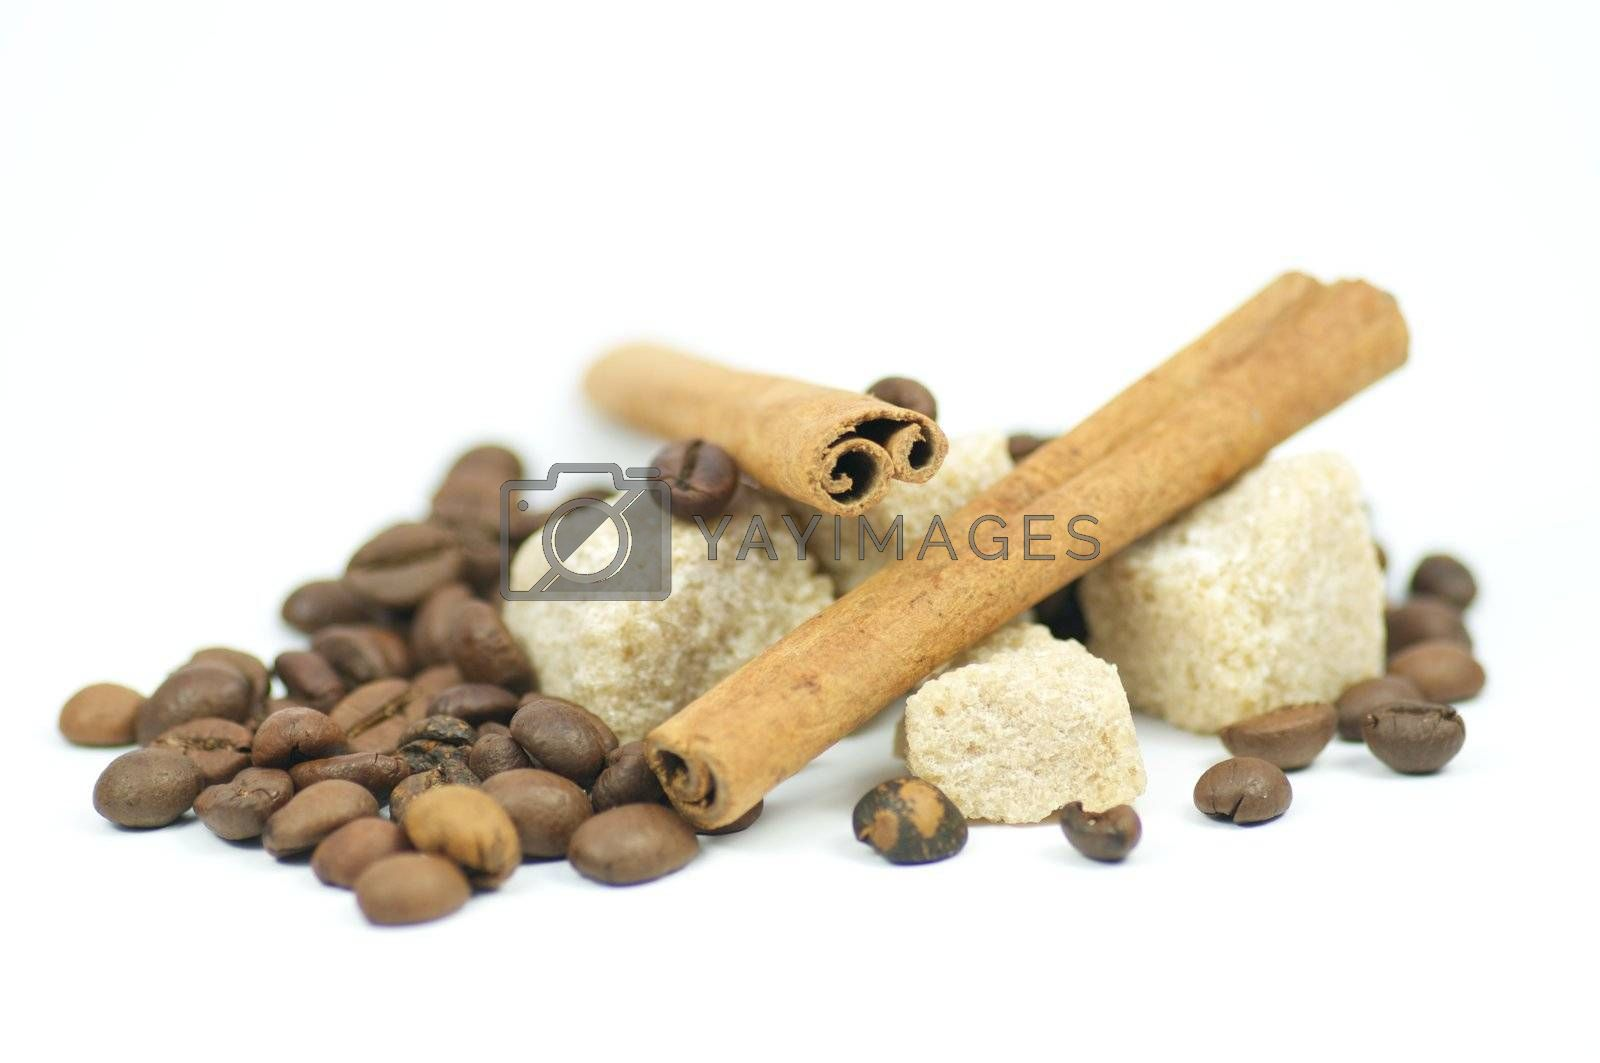 Cinnamon sticks, brown sugar and coffee grains isolated on white background